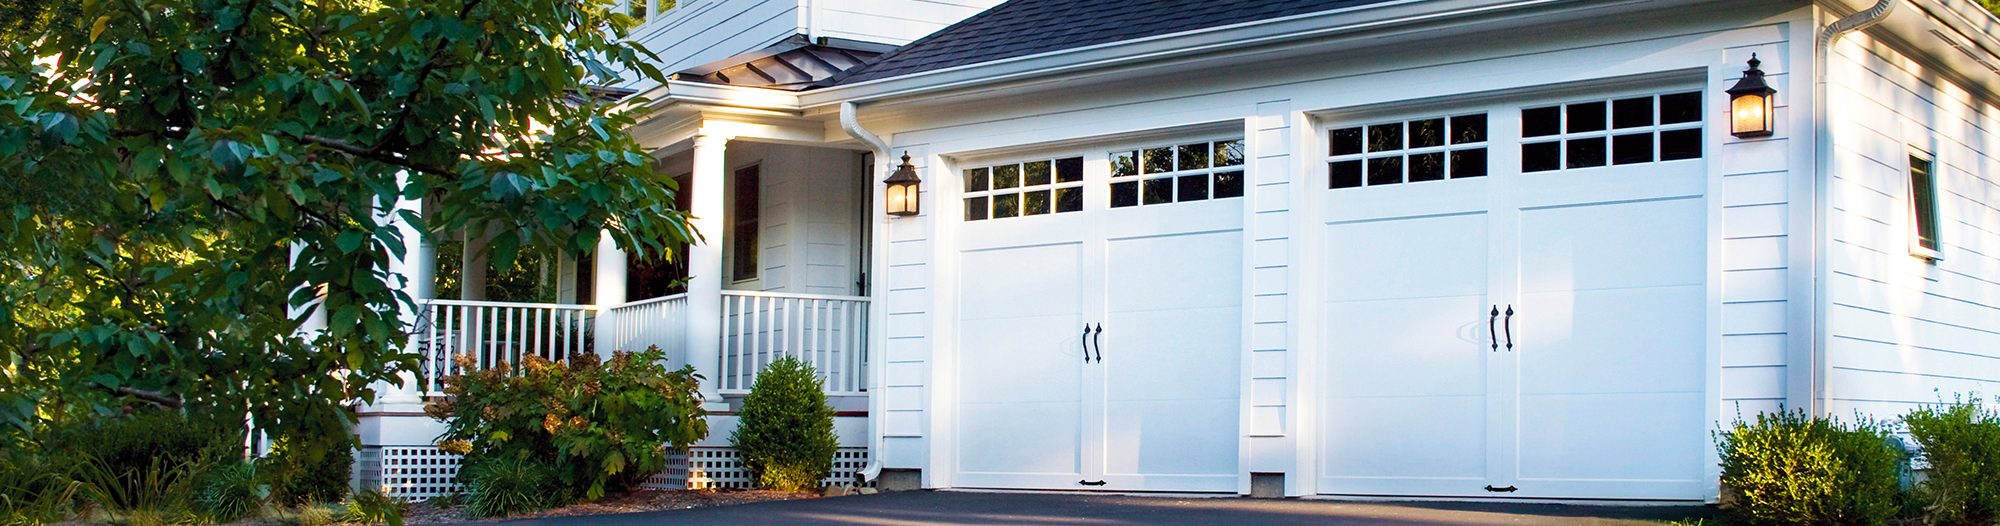 Residential Garage Door Products Clopay And Liftmaster